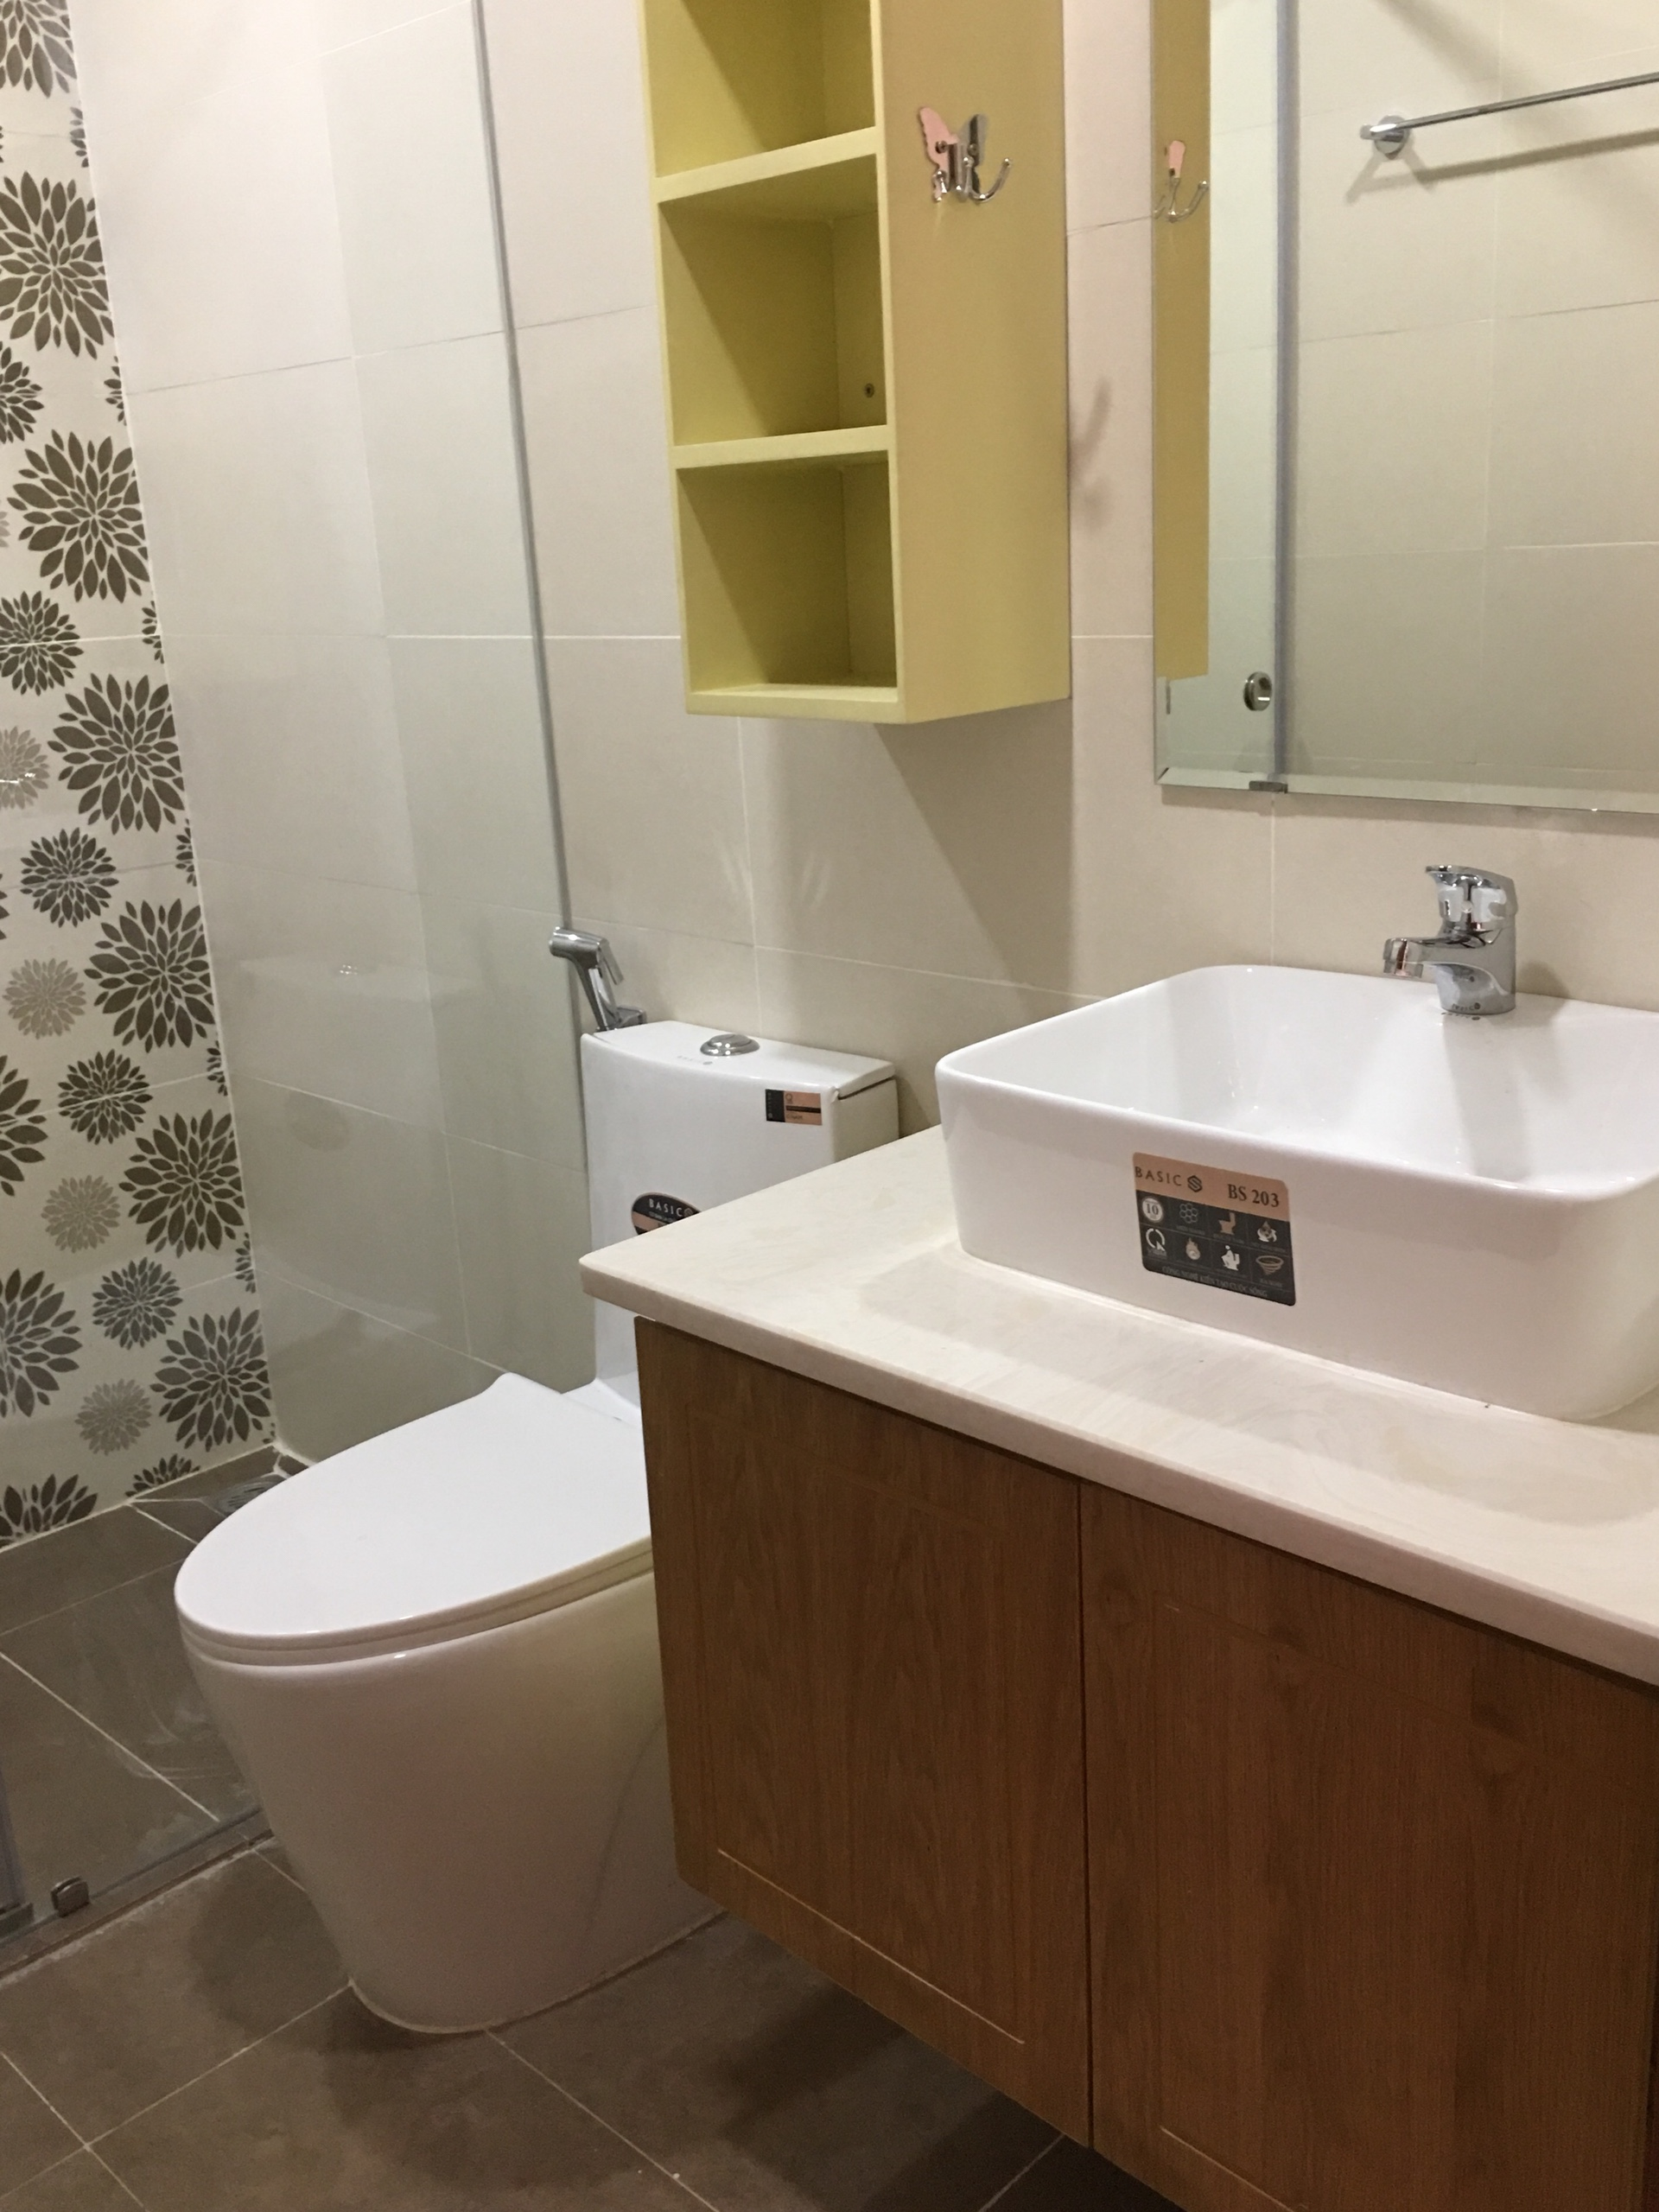 Serviced apartment for rent D299477 (11)